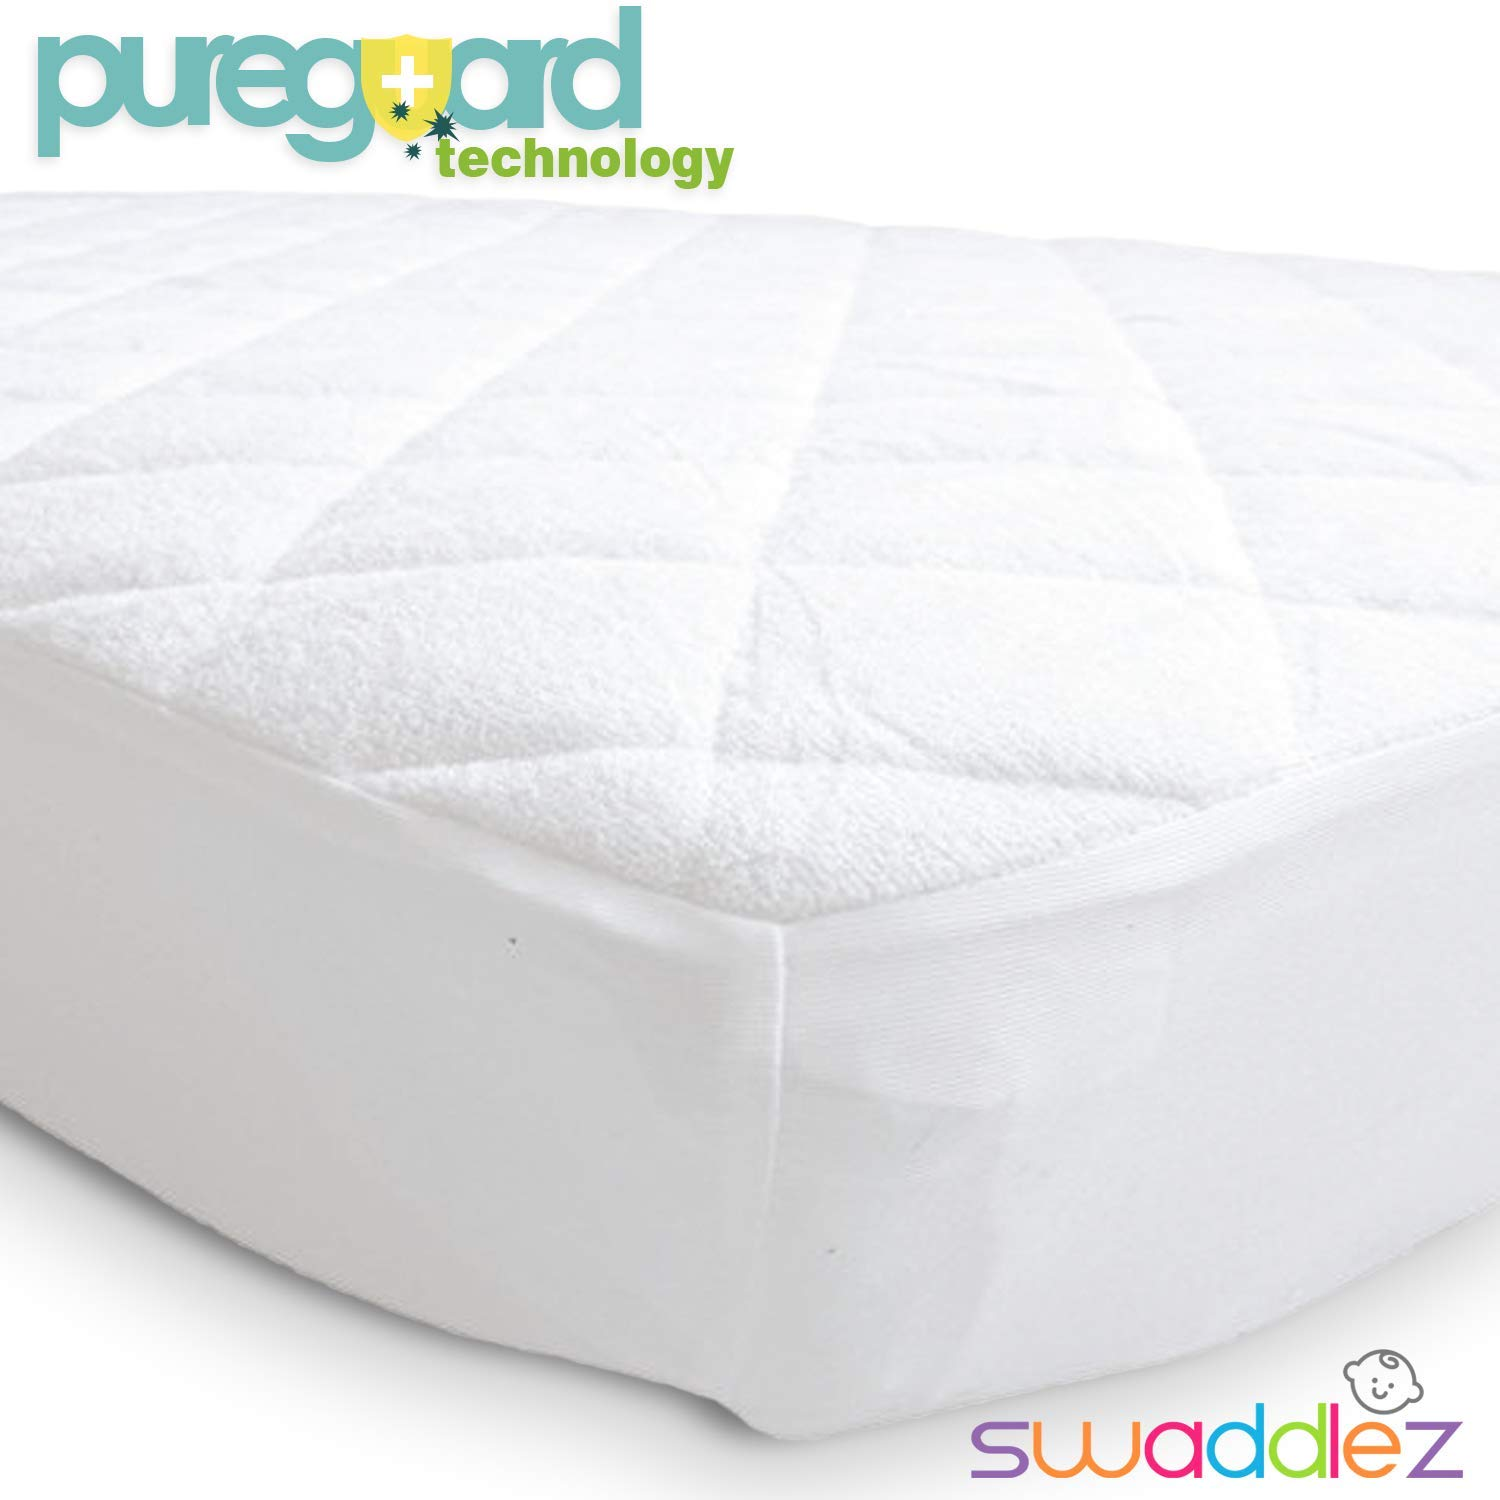 Very Helpful Crib Mattress Pad Amazon.com : Pack N Play Mattress Pad | Mini Crib Waterproof Protector |  Padded Cover For Graco Playard Matress | Fits All Baby Portable Cribs, ...